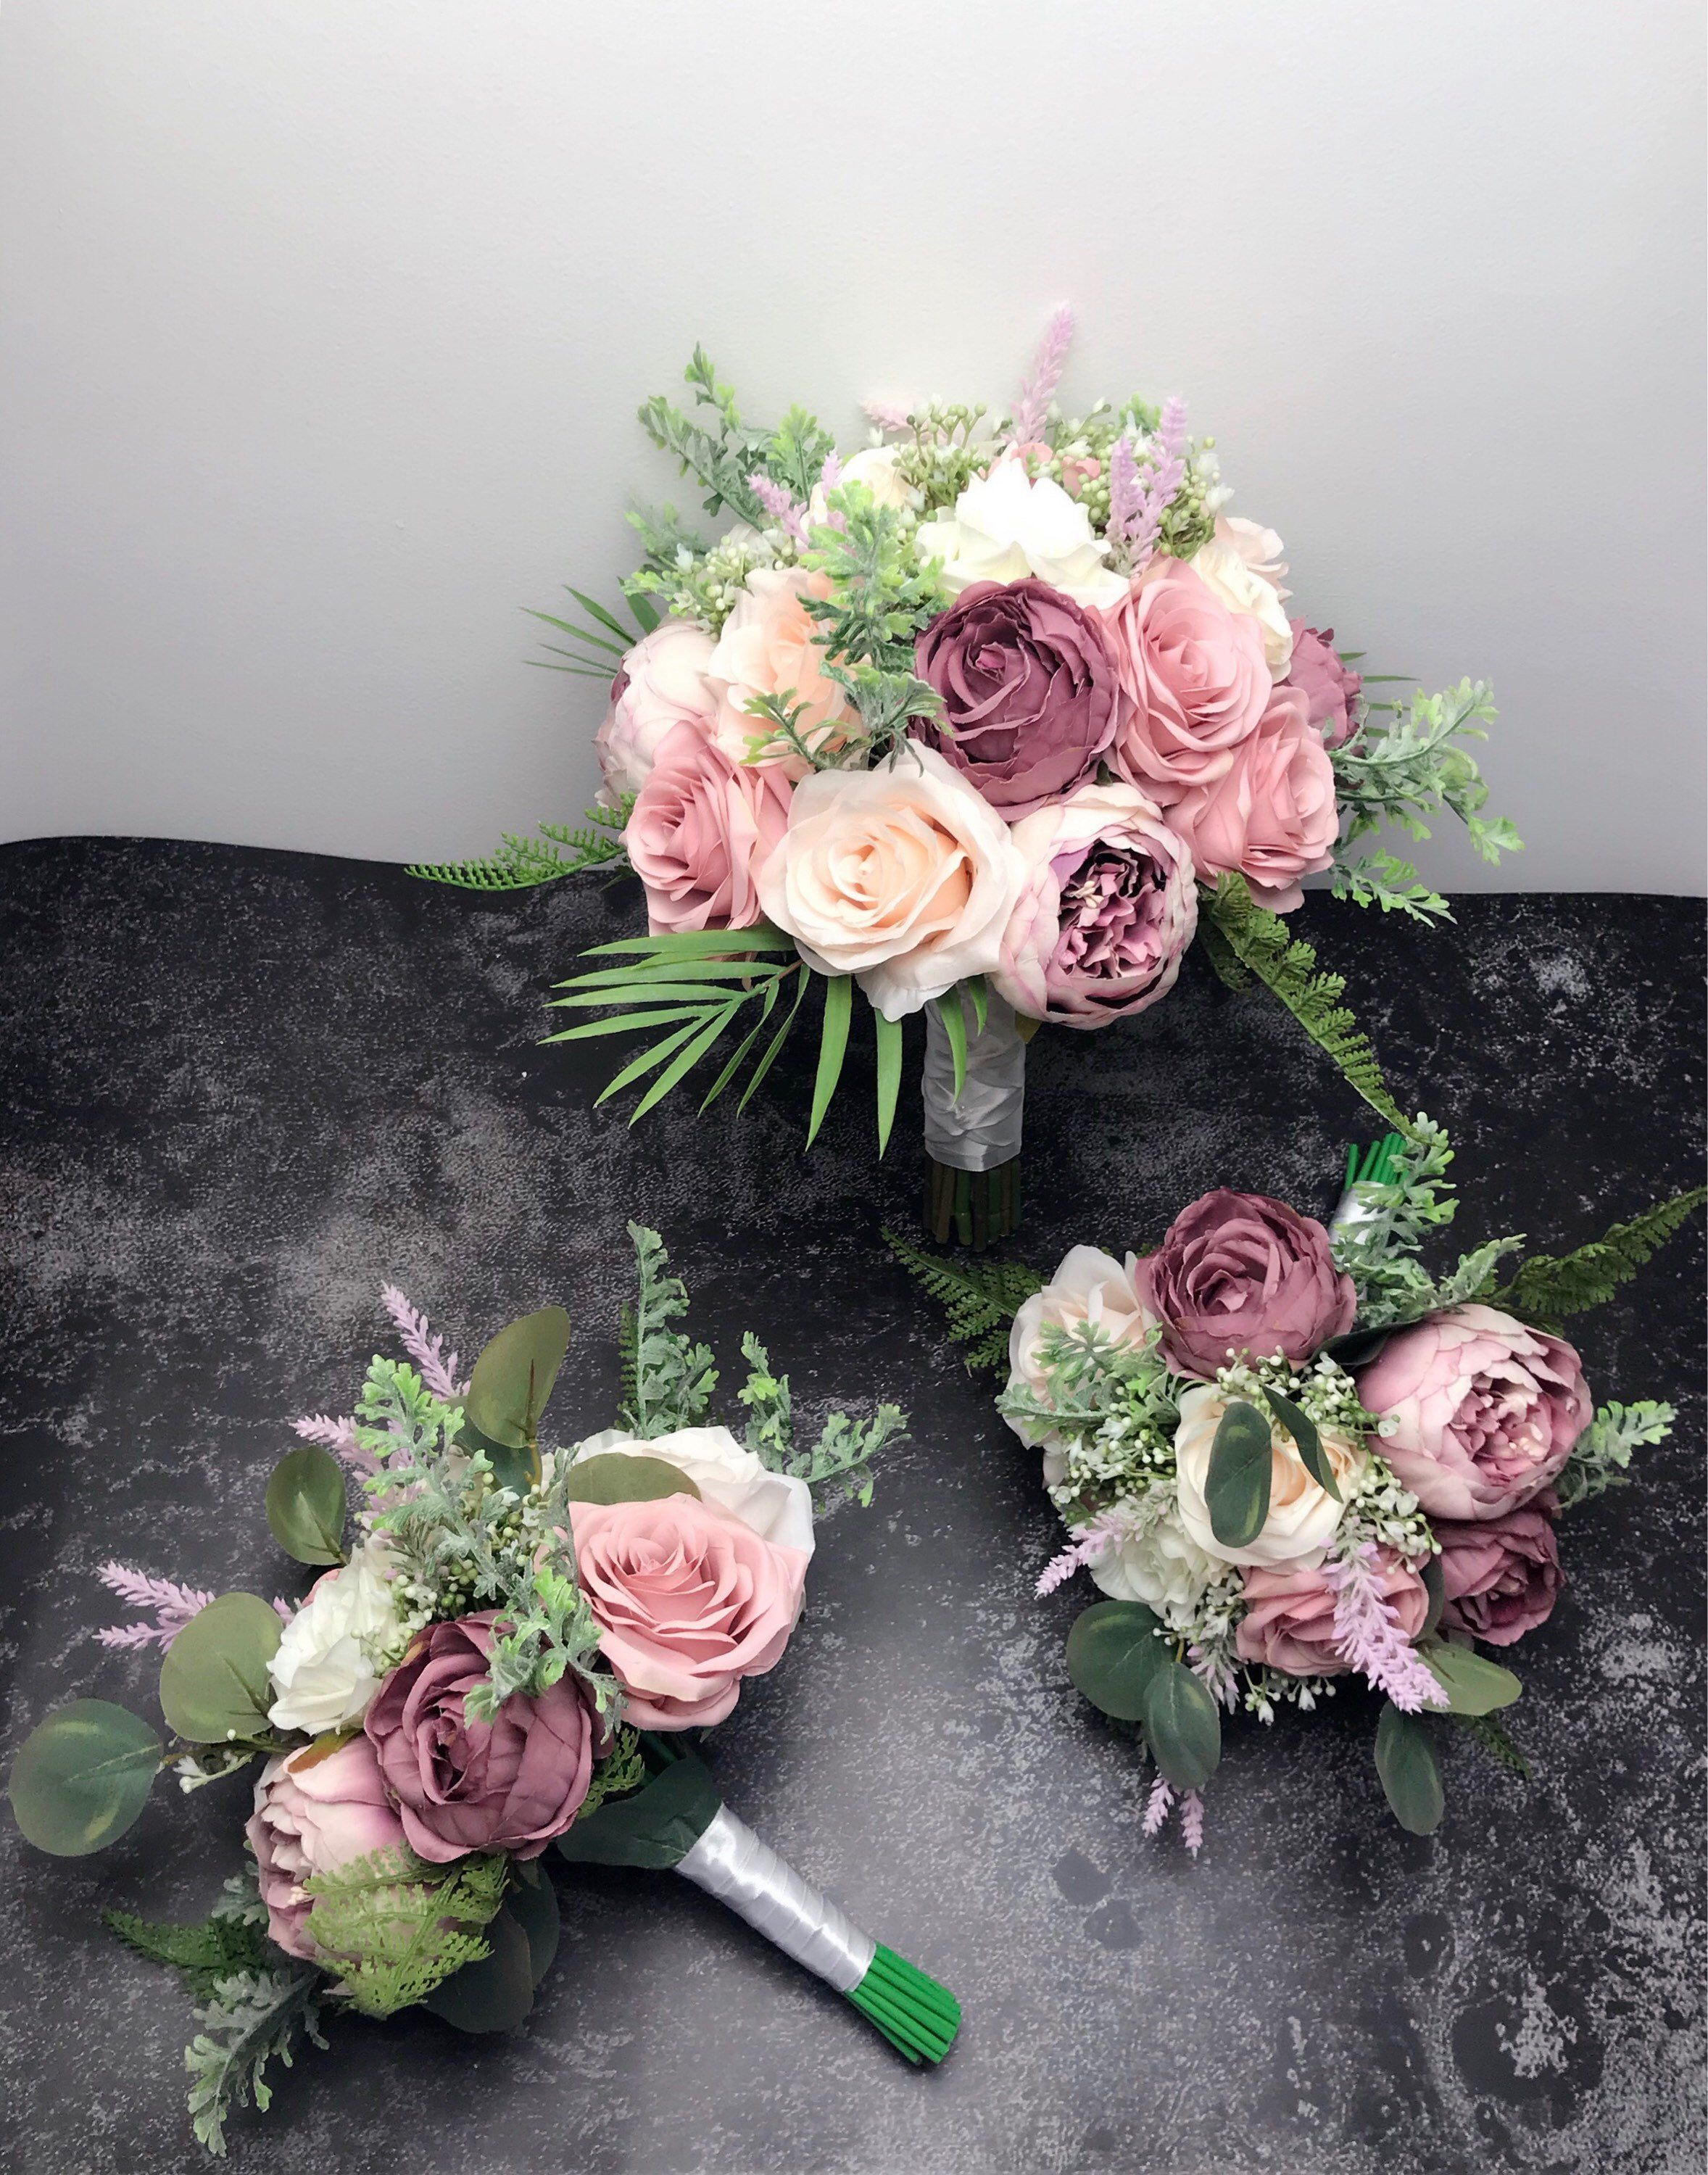 Dusty rose &ivory bouquet,Wedding Bouquets, Bridal Bouquets, Bridesmaids bouquets, Boho Bouquets, Blush, Mauve, Eucalyptus, Cream #bridesmaidbouquets